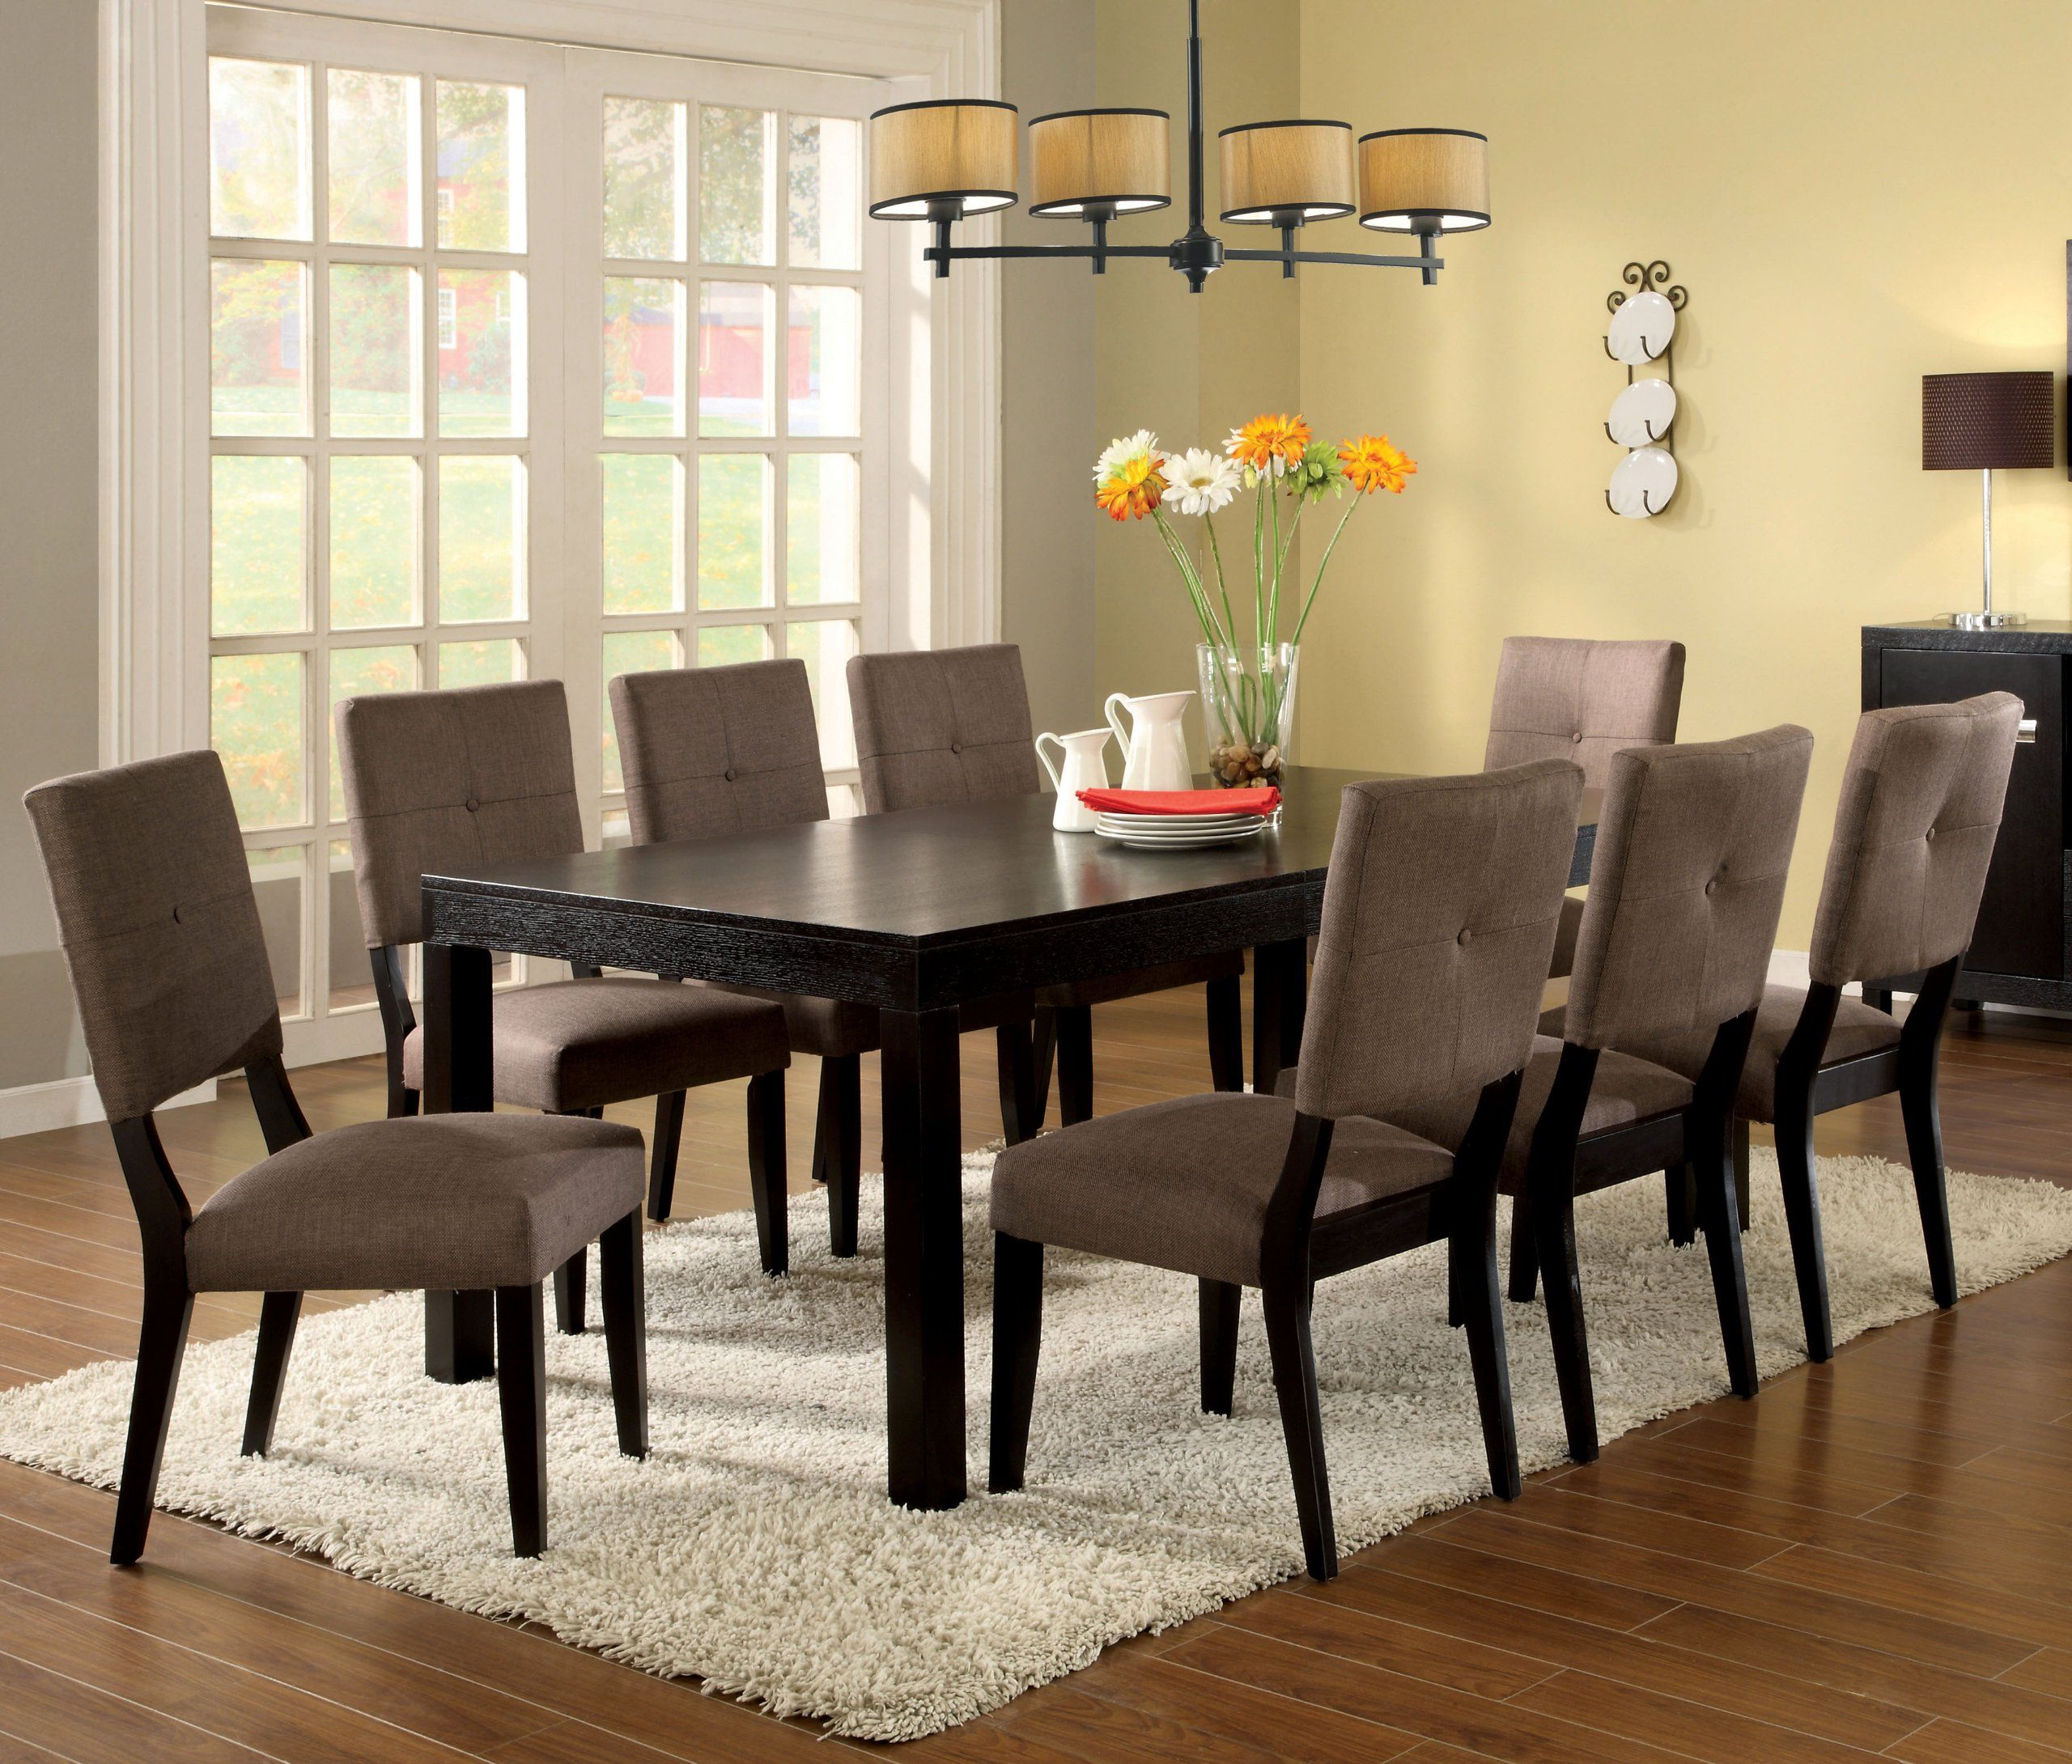 Amazon.com   Furniture Of America Rectangular Dining Table With Removable  Leaf, Espresso